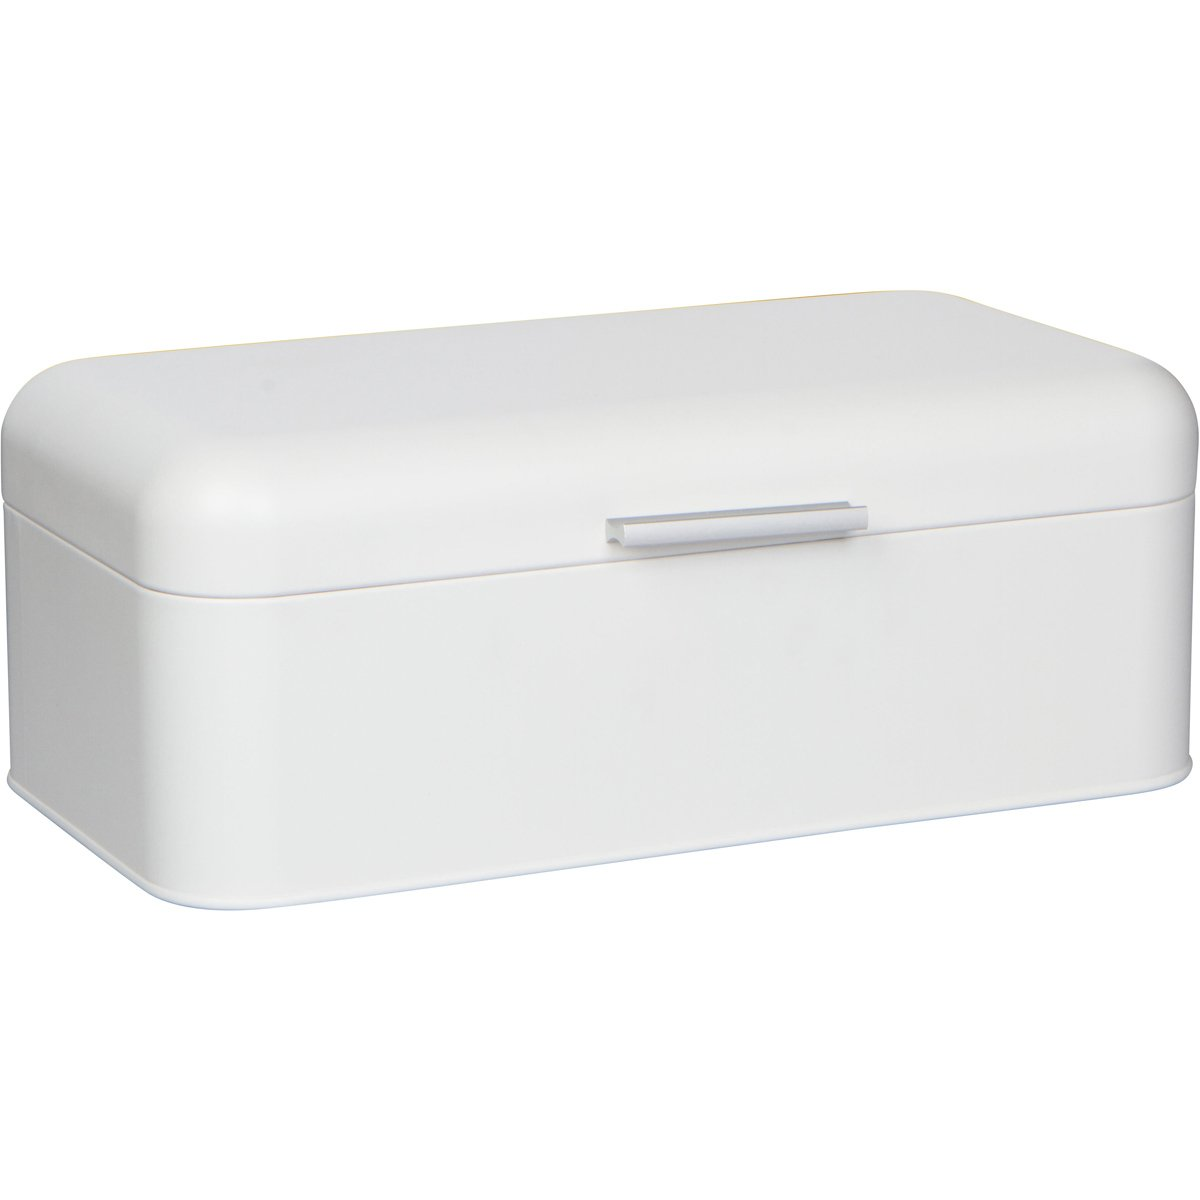 "Large White Bread Box - Extra Large Storage Container for Loaves, Bagels, Chips & More: 16.5"" x 8.9"" x 6.5"" 